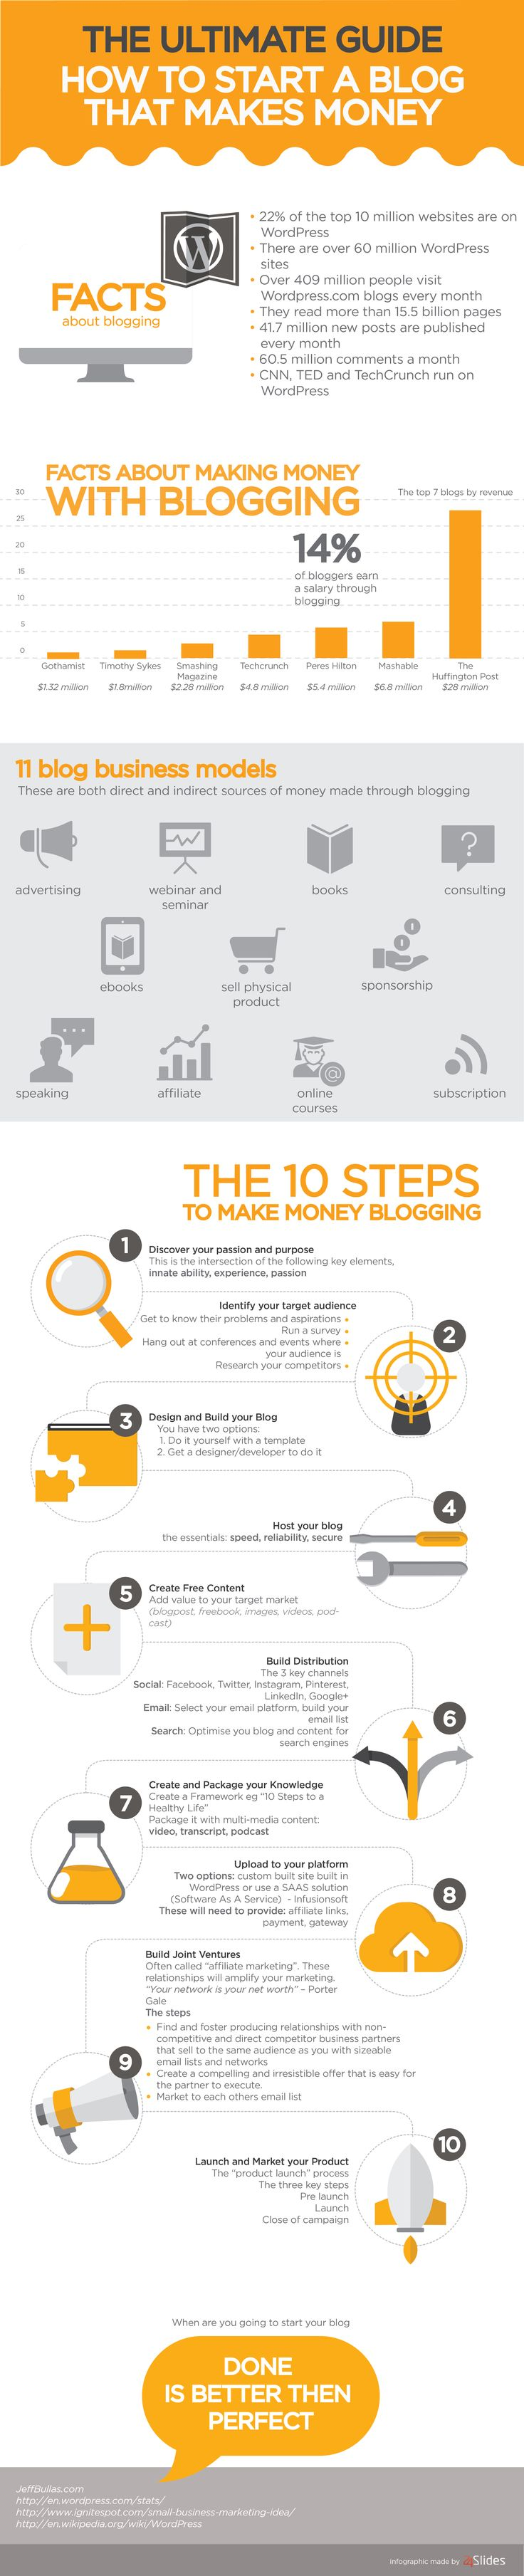 Blogging can be a lot of fun when you make enough money to be comfortable. The problem is not all blogs actually make money. This infographic by 24 Slides suggests how you can start a blog that makes money: